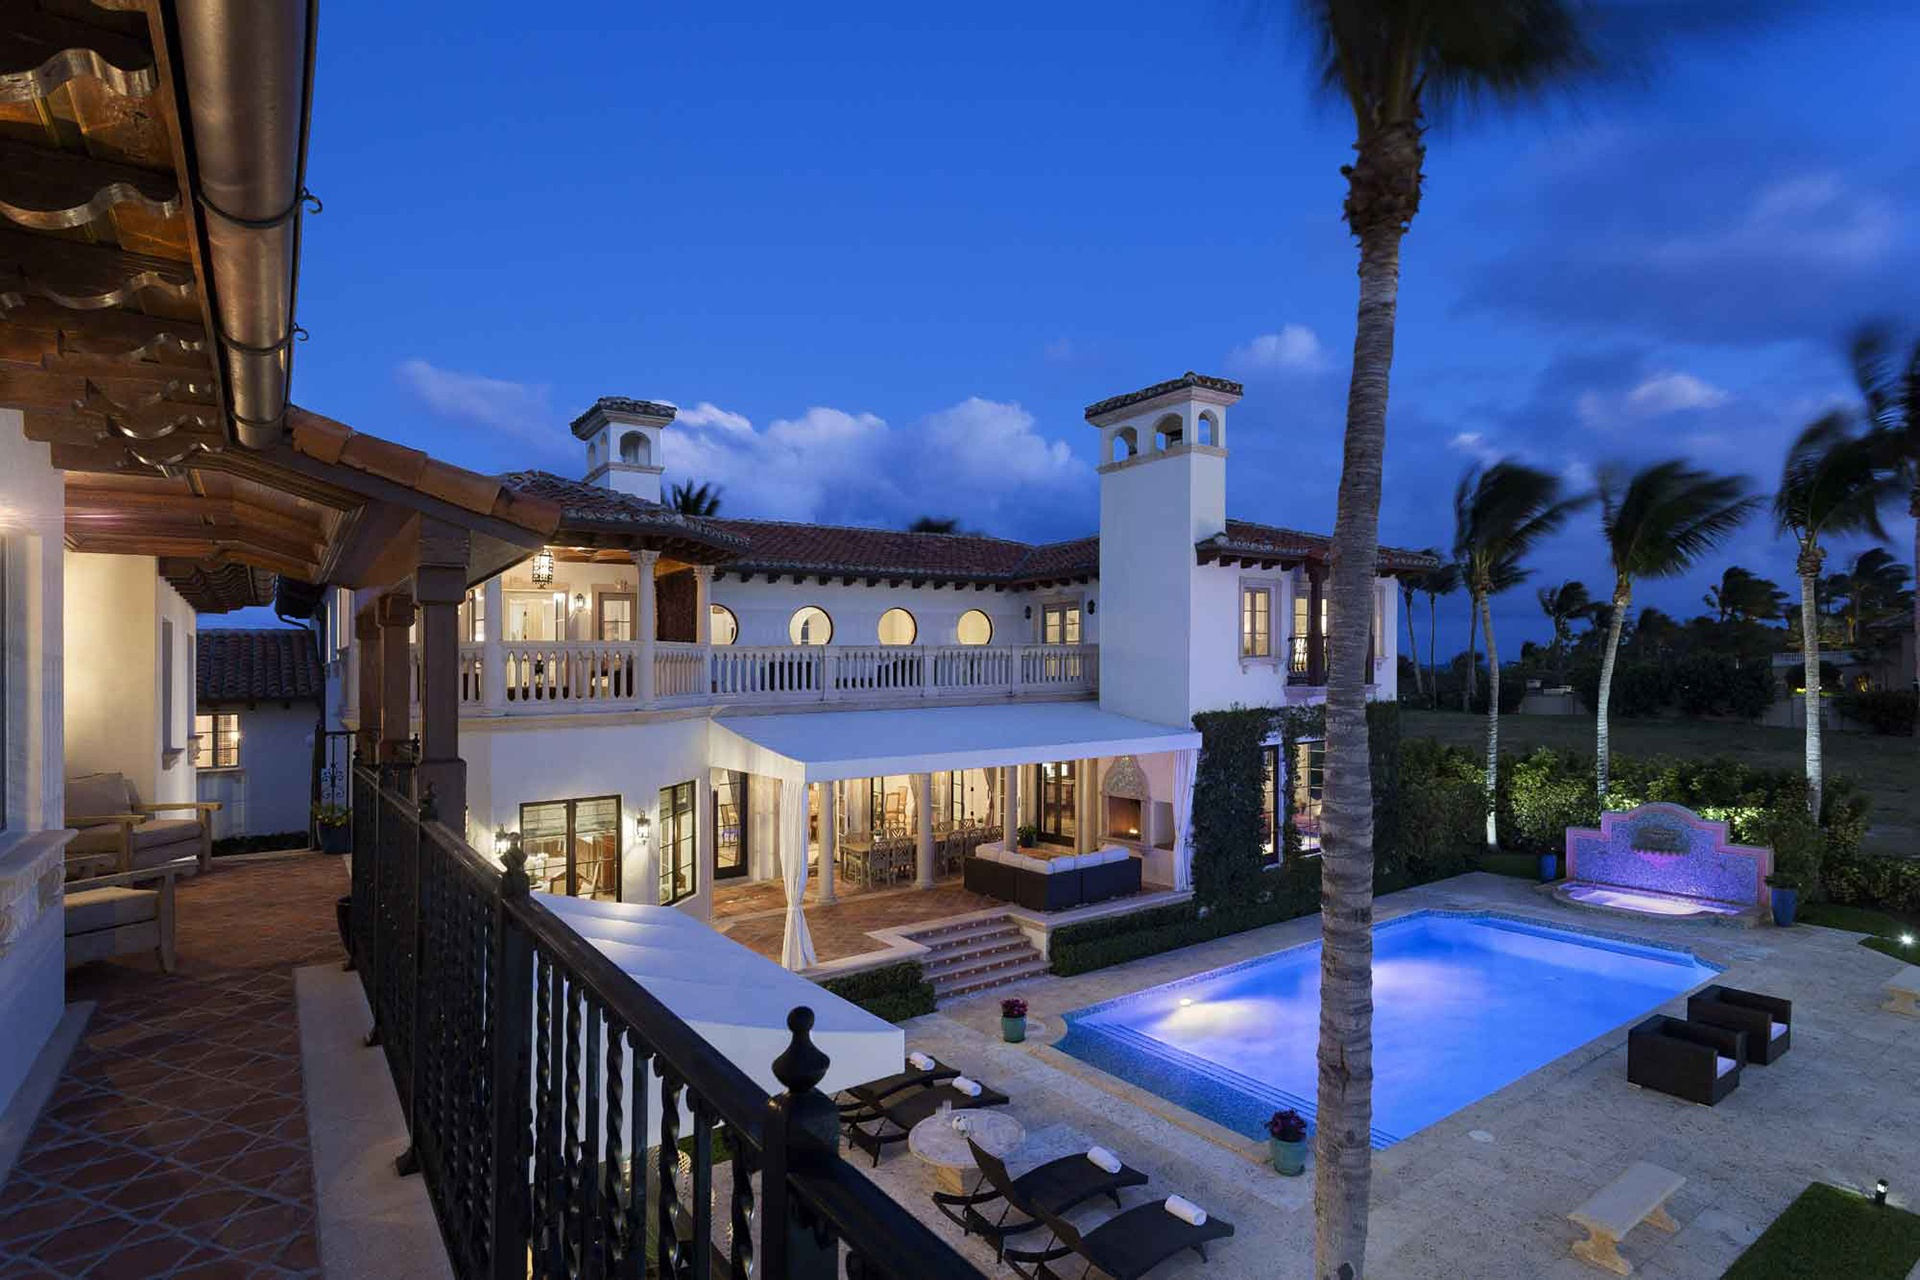 The magnificent oceanfront estate in Manalapan, Florida, features a club room with an onyx wet bar and piano, frequently played by the current homeowner, celebrated singer-songwriter Billy Joel.